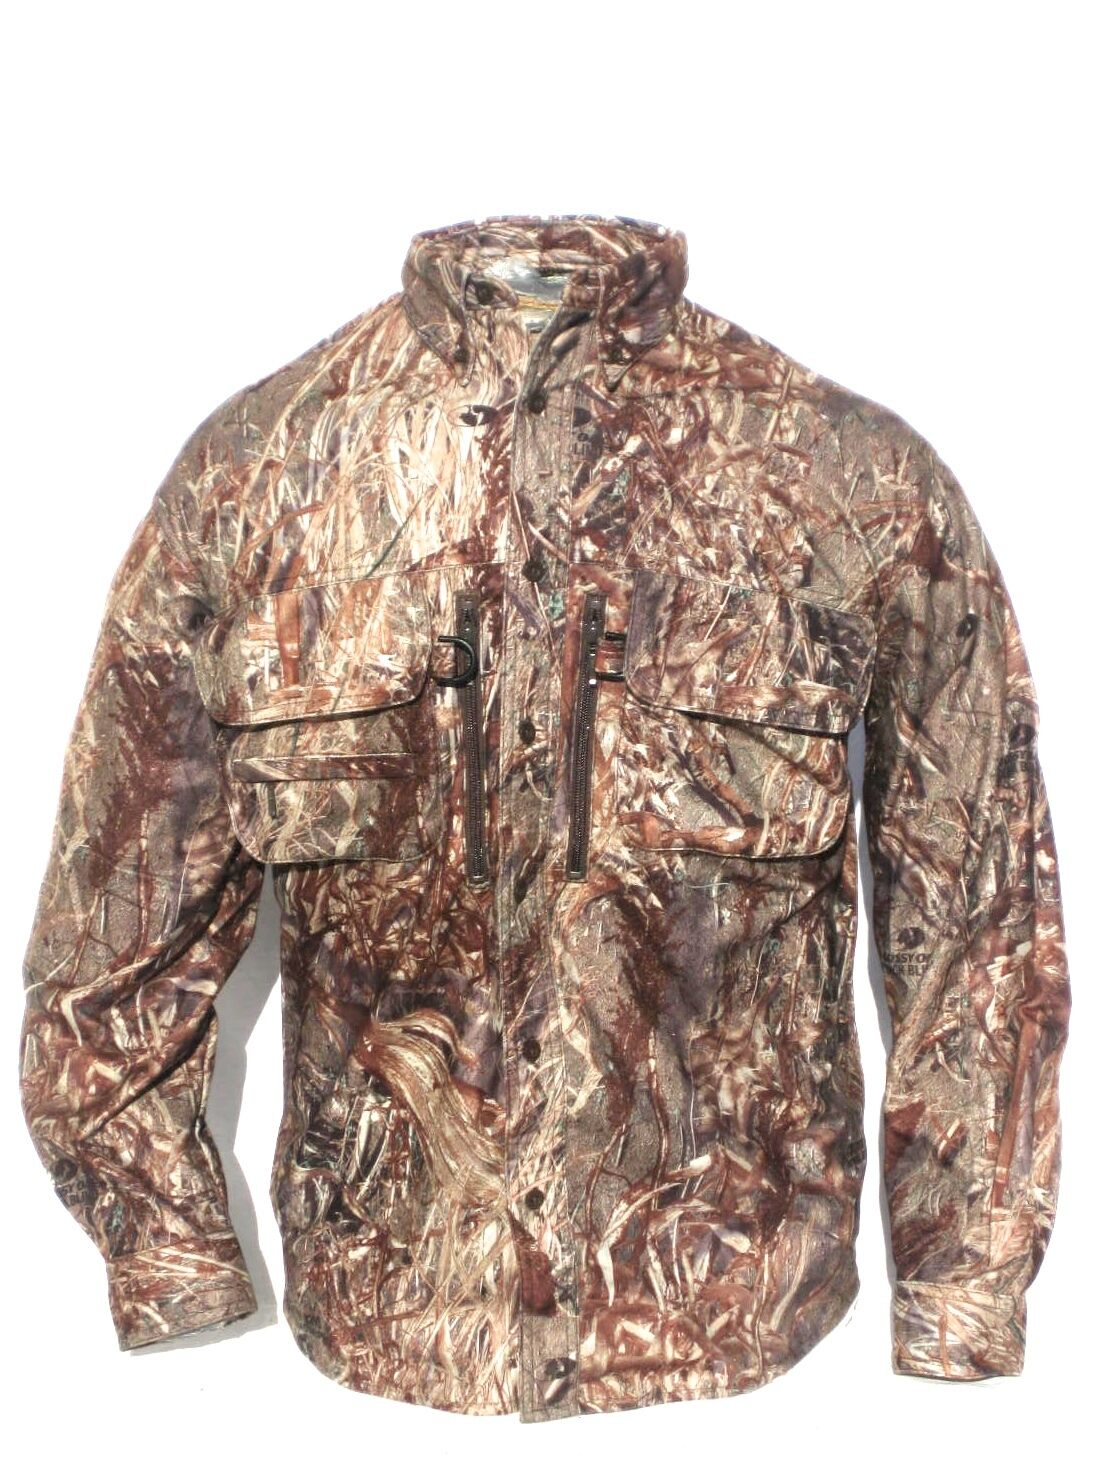 Cabela's Waterfowl Guide Mossy Oak DUCK BLIND Breathable Pro Hunting Long Shirt